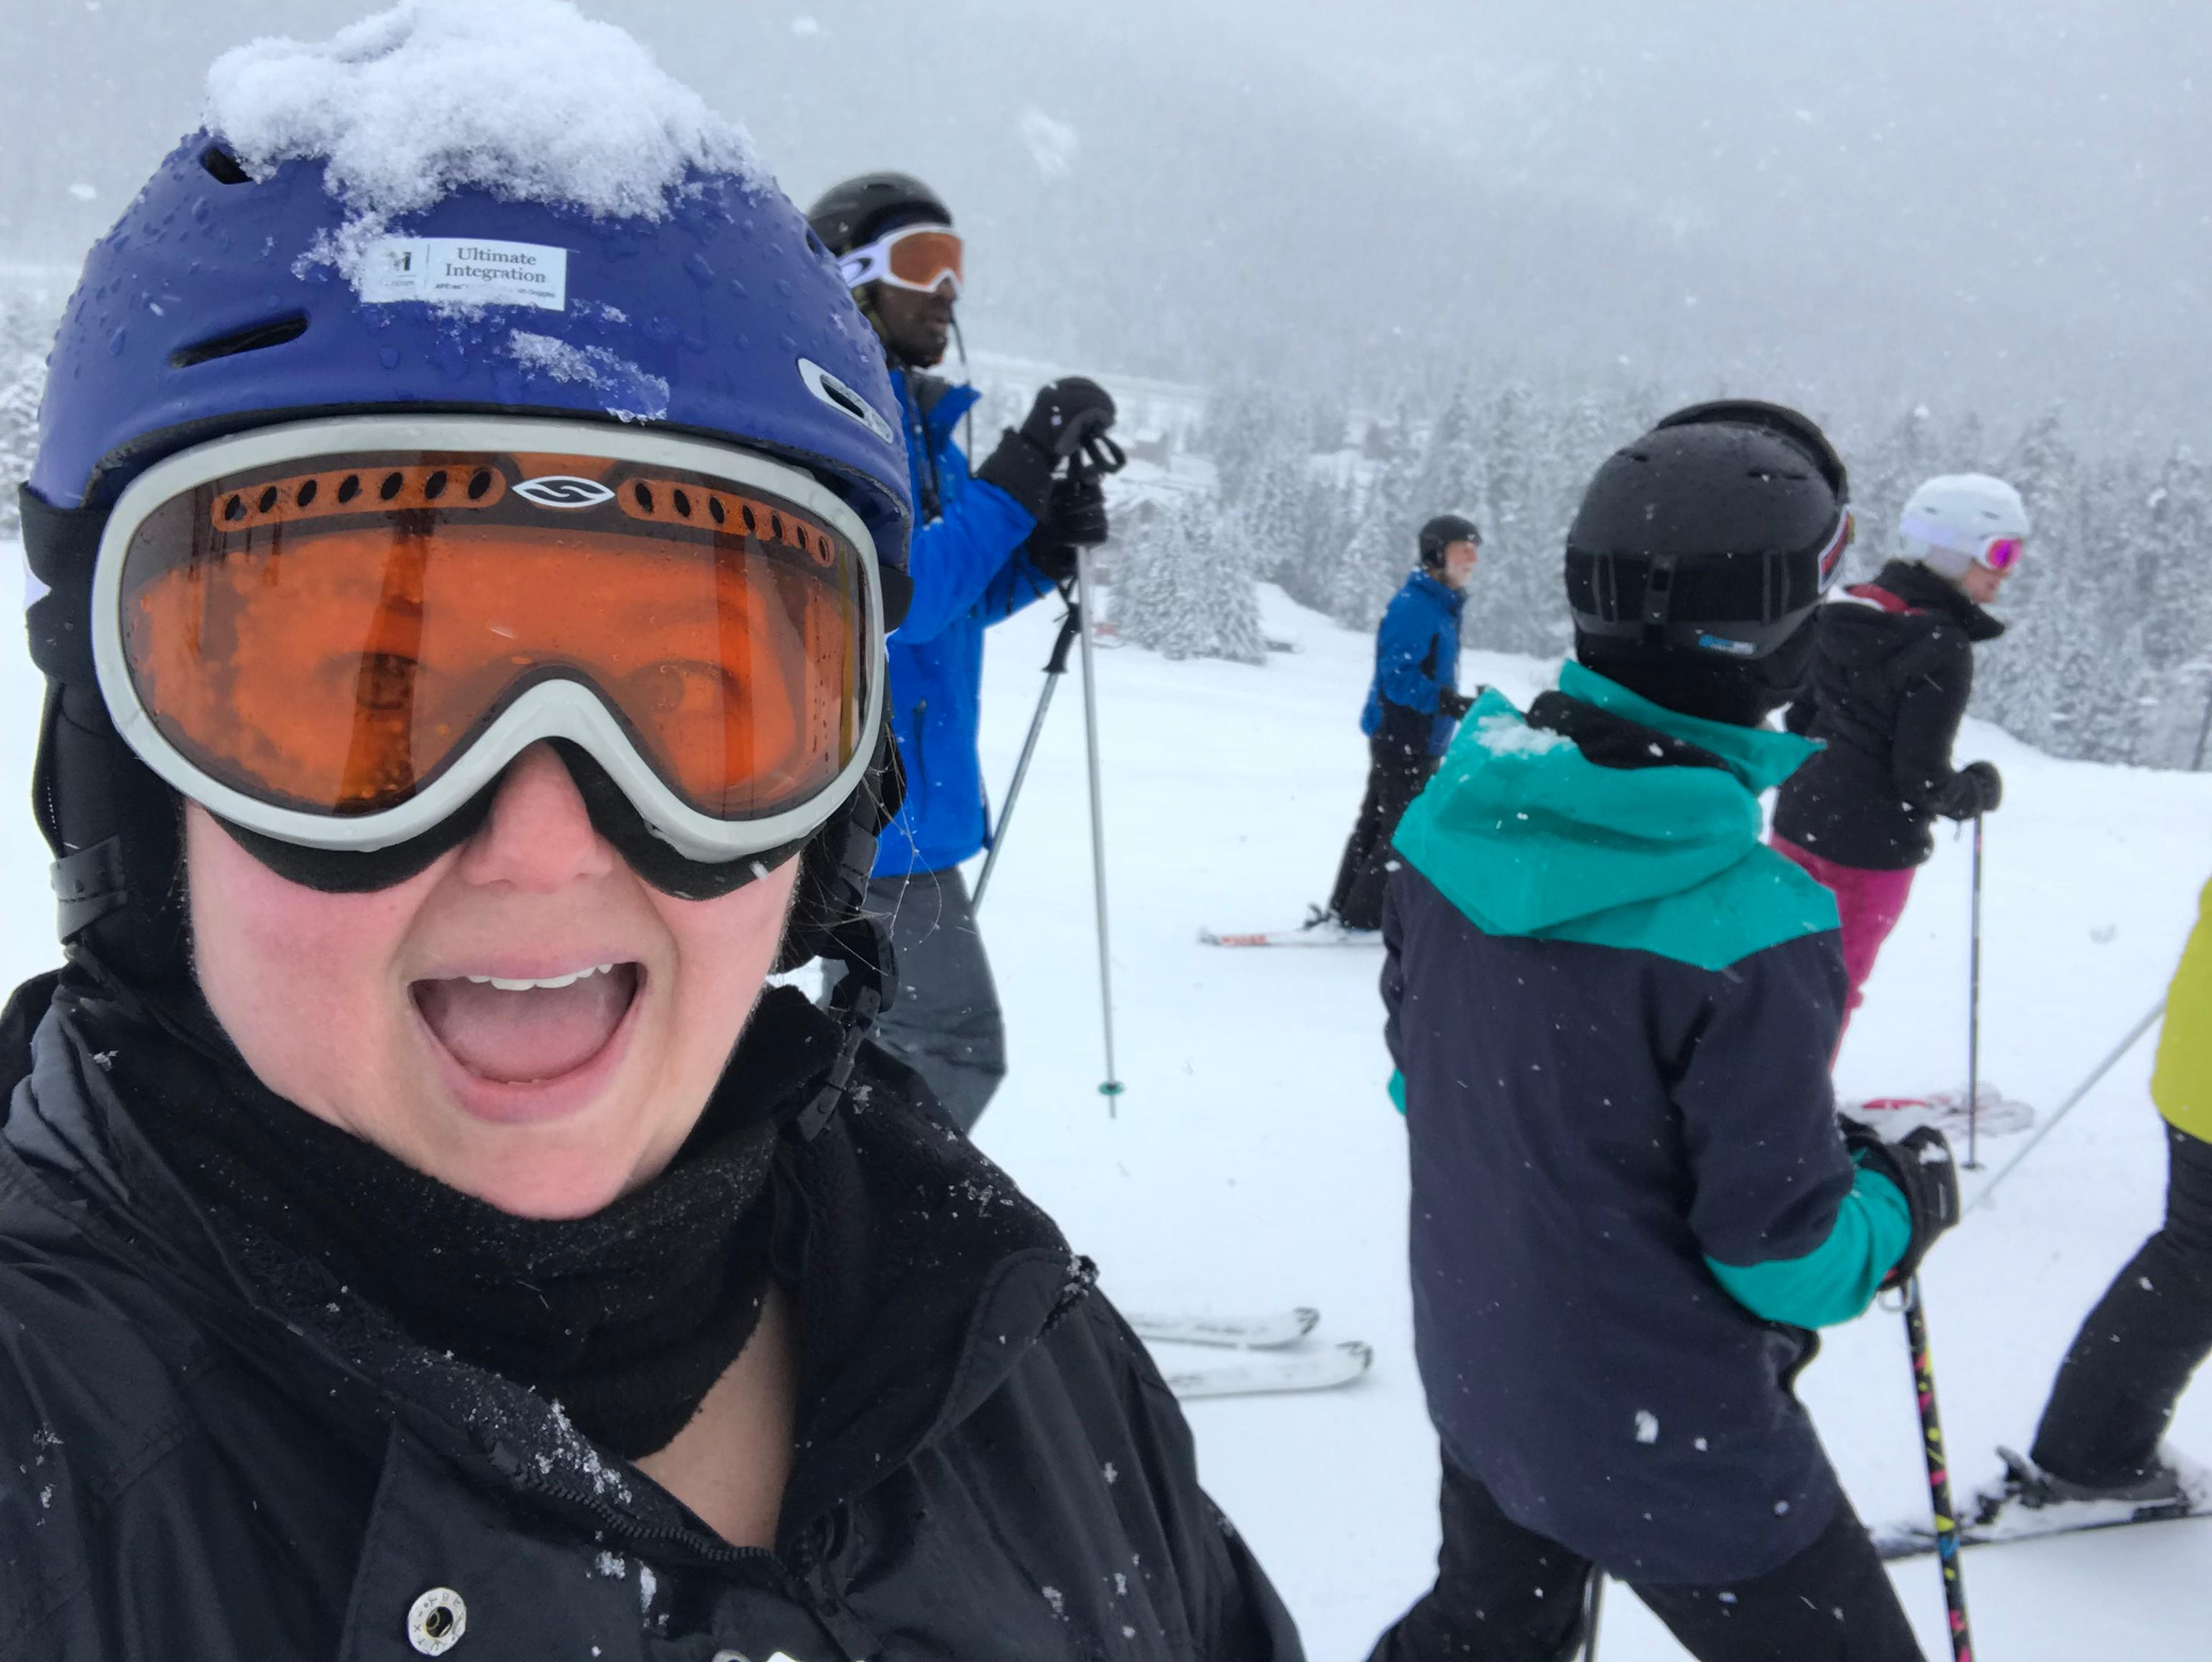 I was thrilled to be back on the slopes! (Image: Rebecca Mongrain/Seattle Refined)